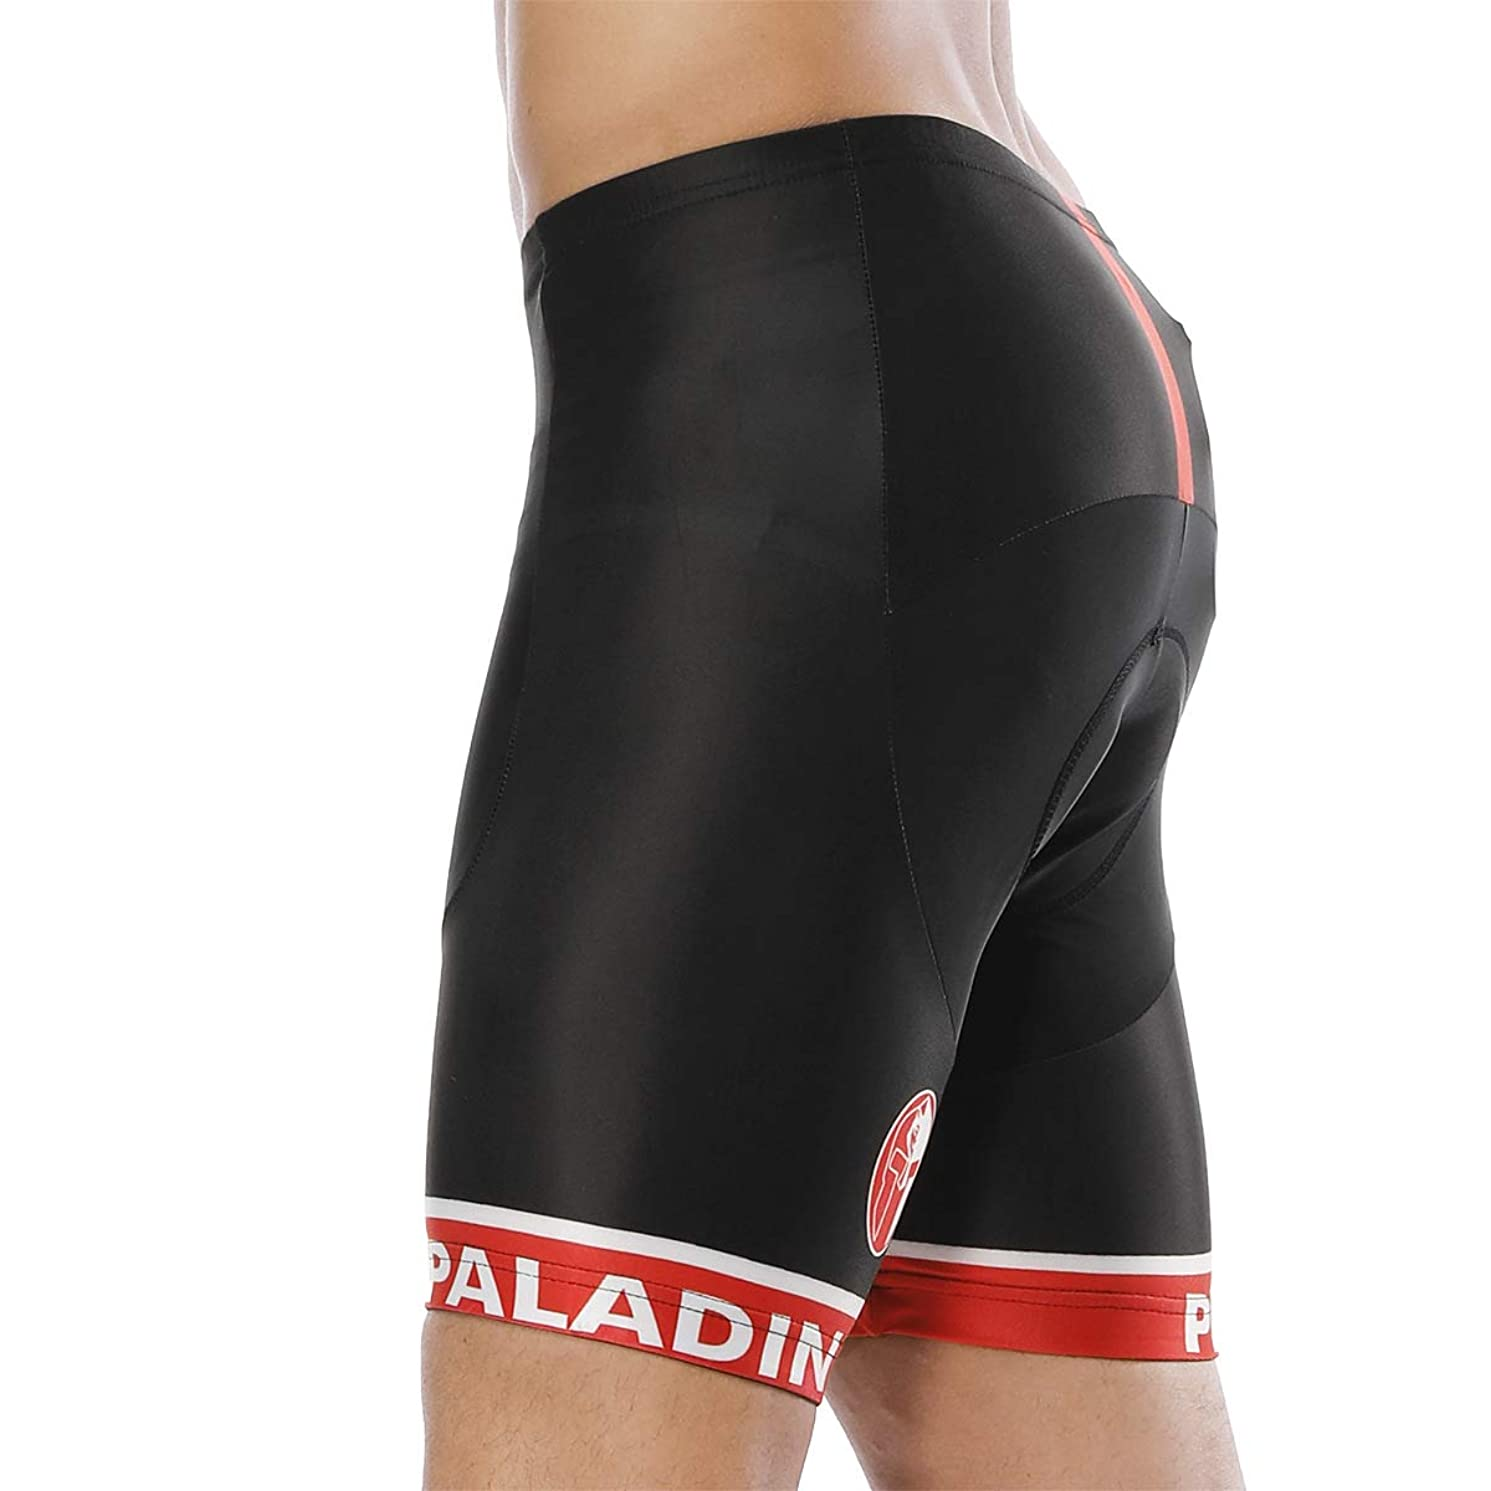 Yrffdk Summer Men's Cycling Shorts Pants Tights Reflective Breathable 4D Padded Moisture Wicking Waterproof Comfortable Wearing,Black,L